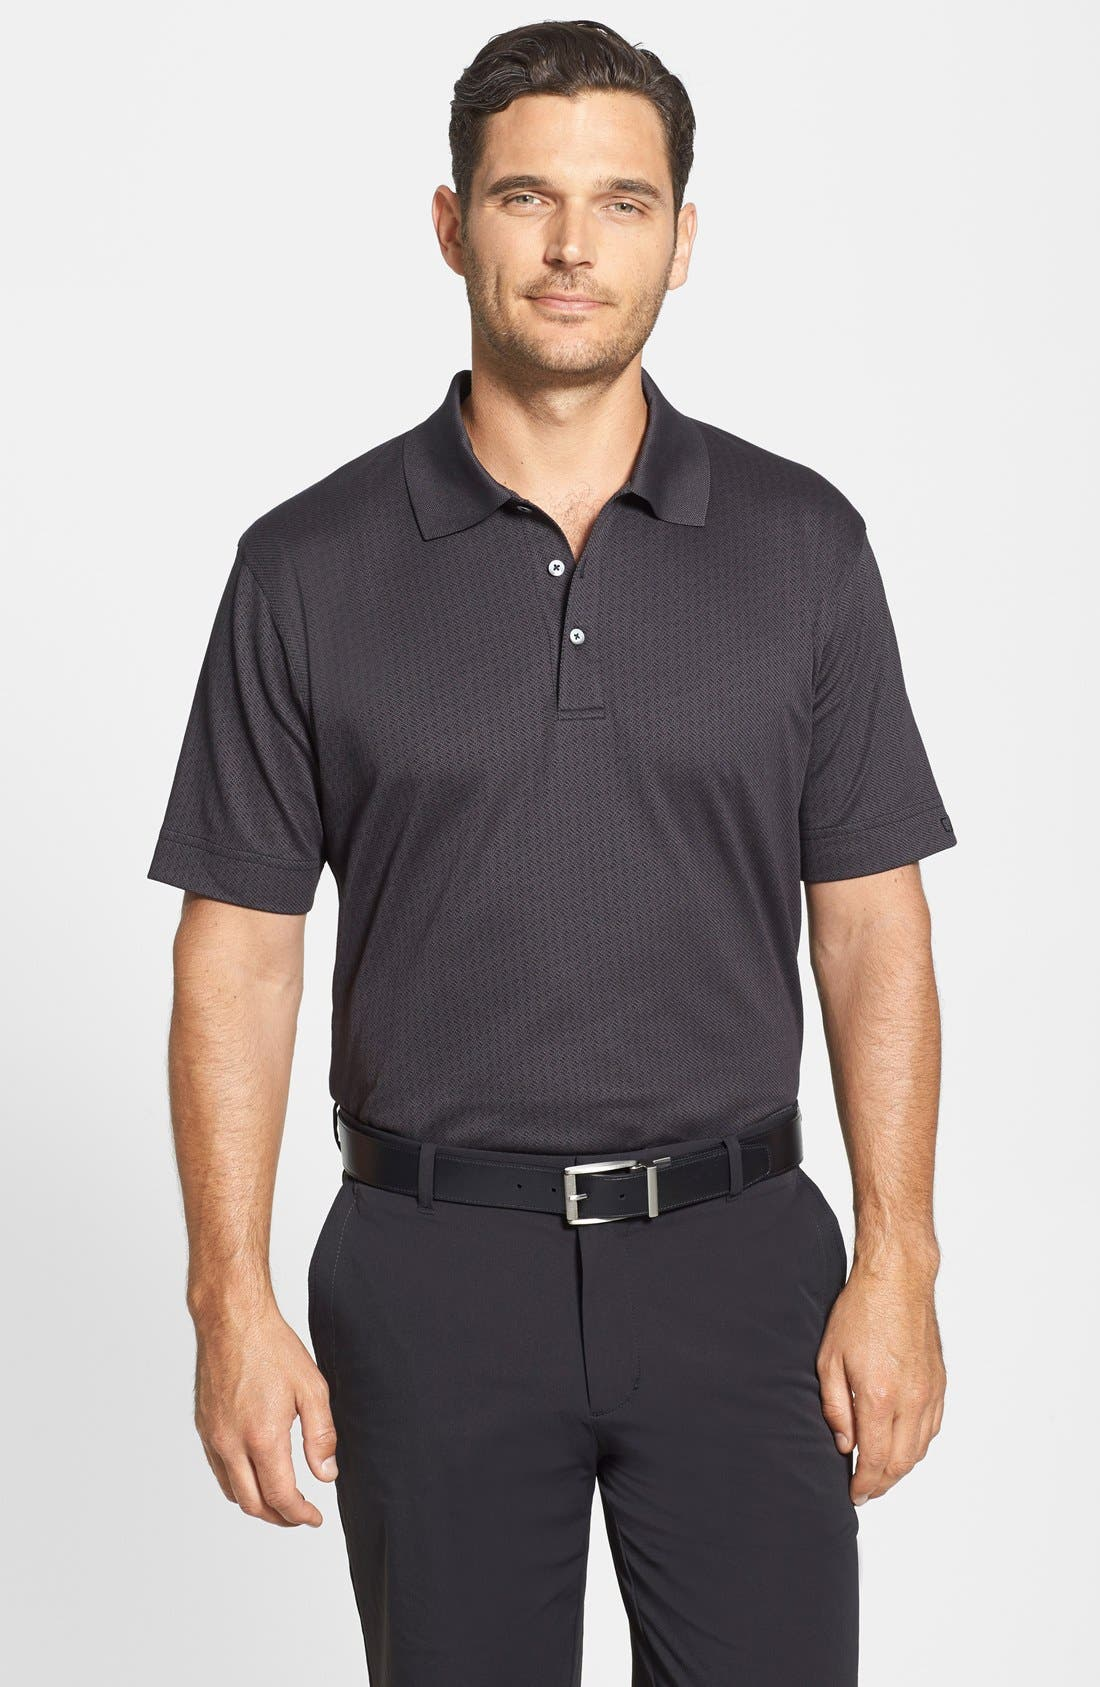 Alternate Image 1 Selected - Cutter & Buck 'Luxe - Faceted' DryTec Golf Polo